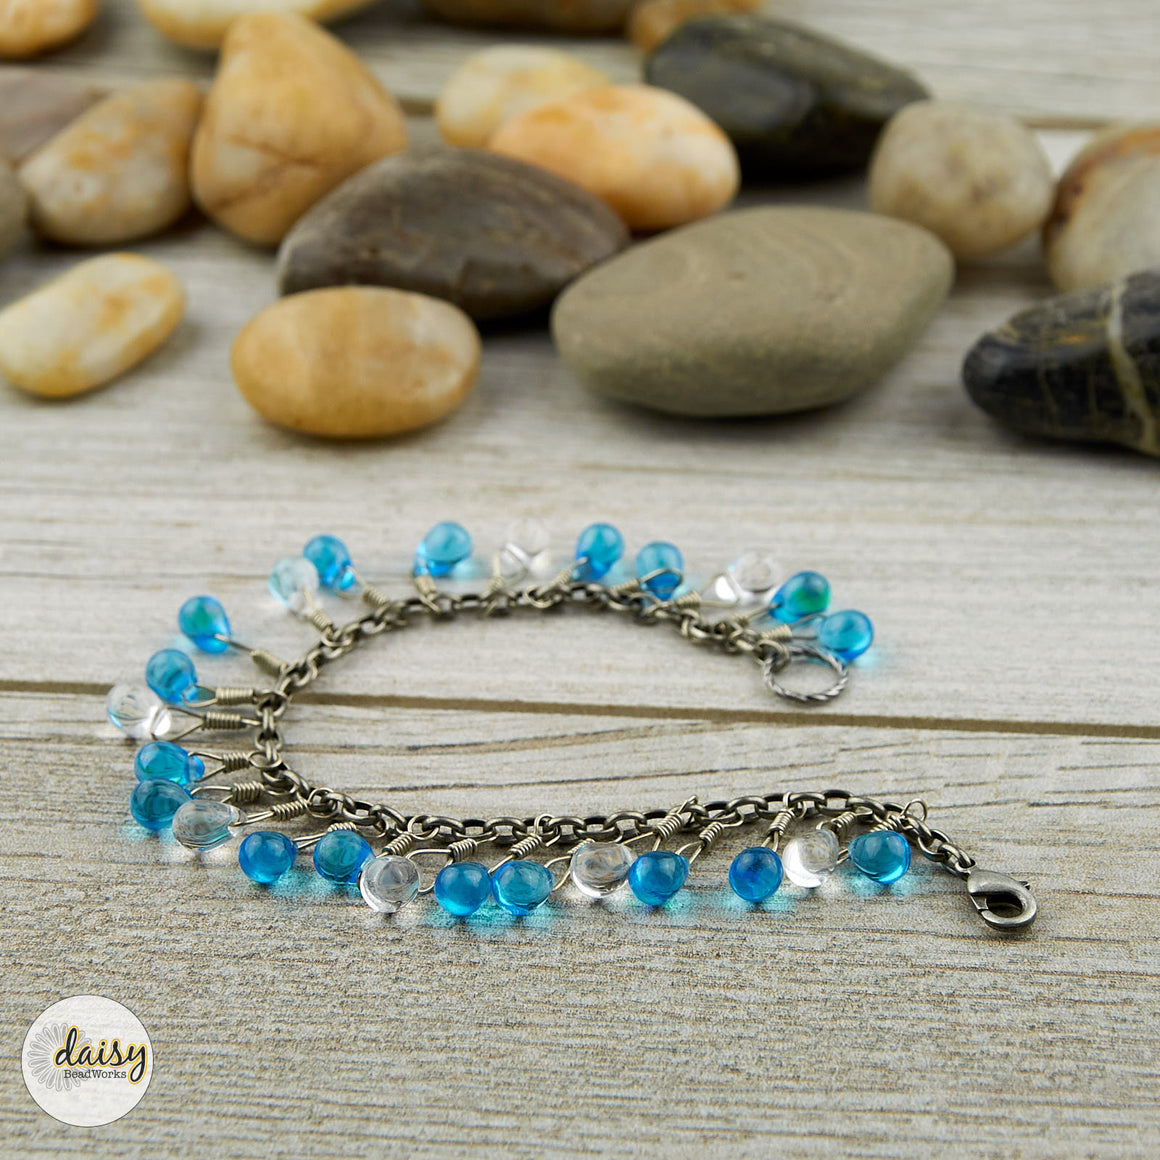 Blue Skies and Raindrops Bracelet